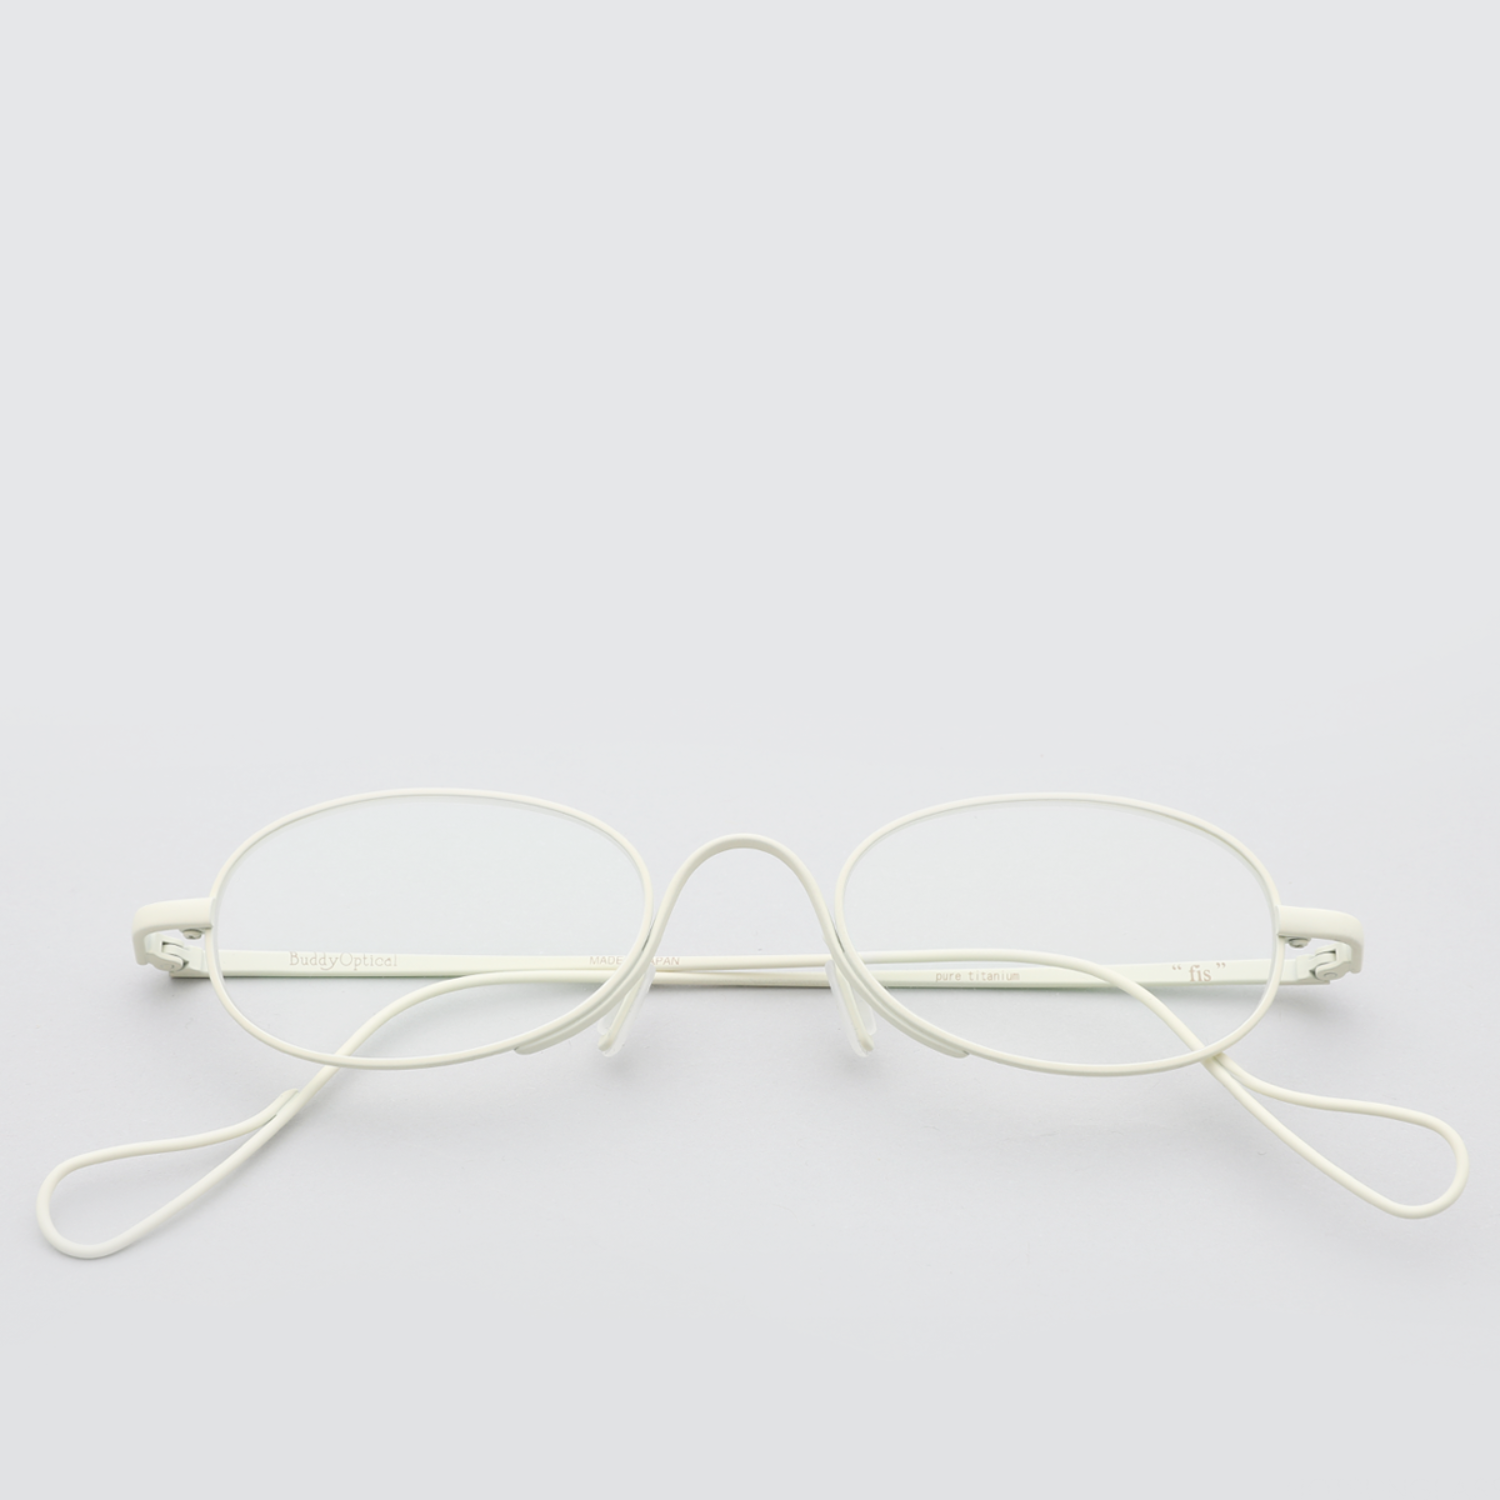 [버디옵티컬안경] fis MATTE IVORY (Buddy Optical)